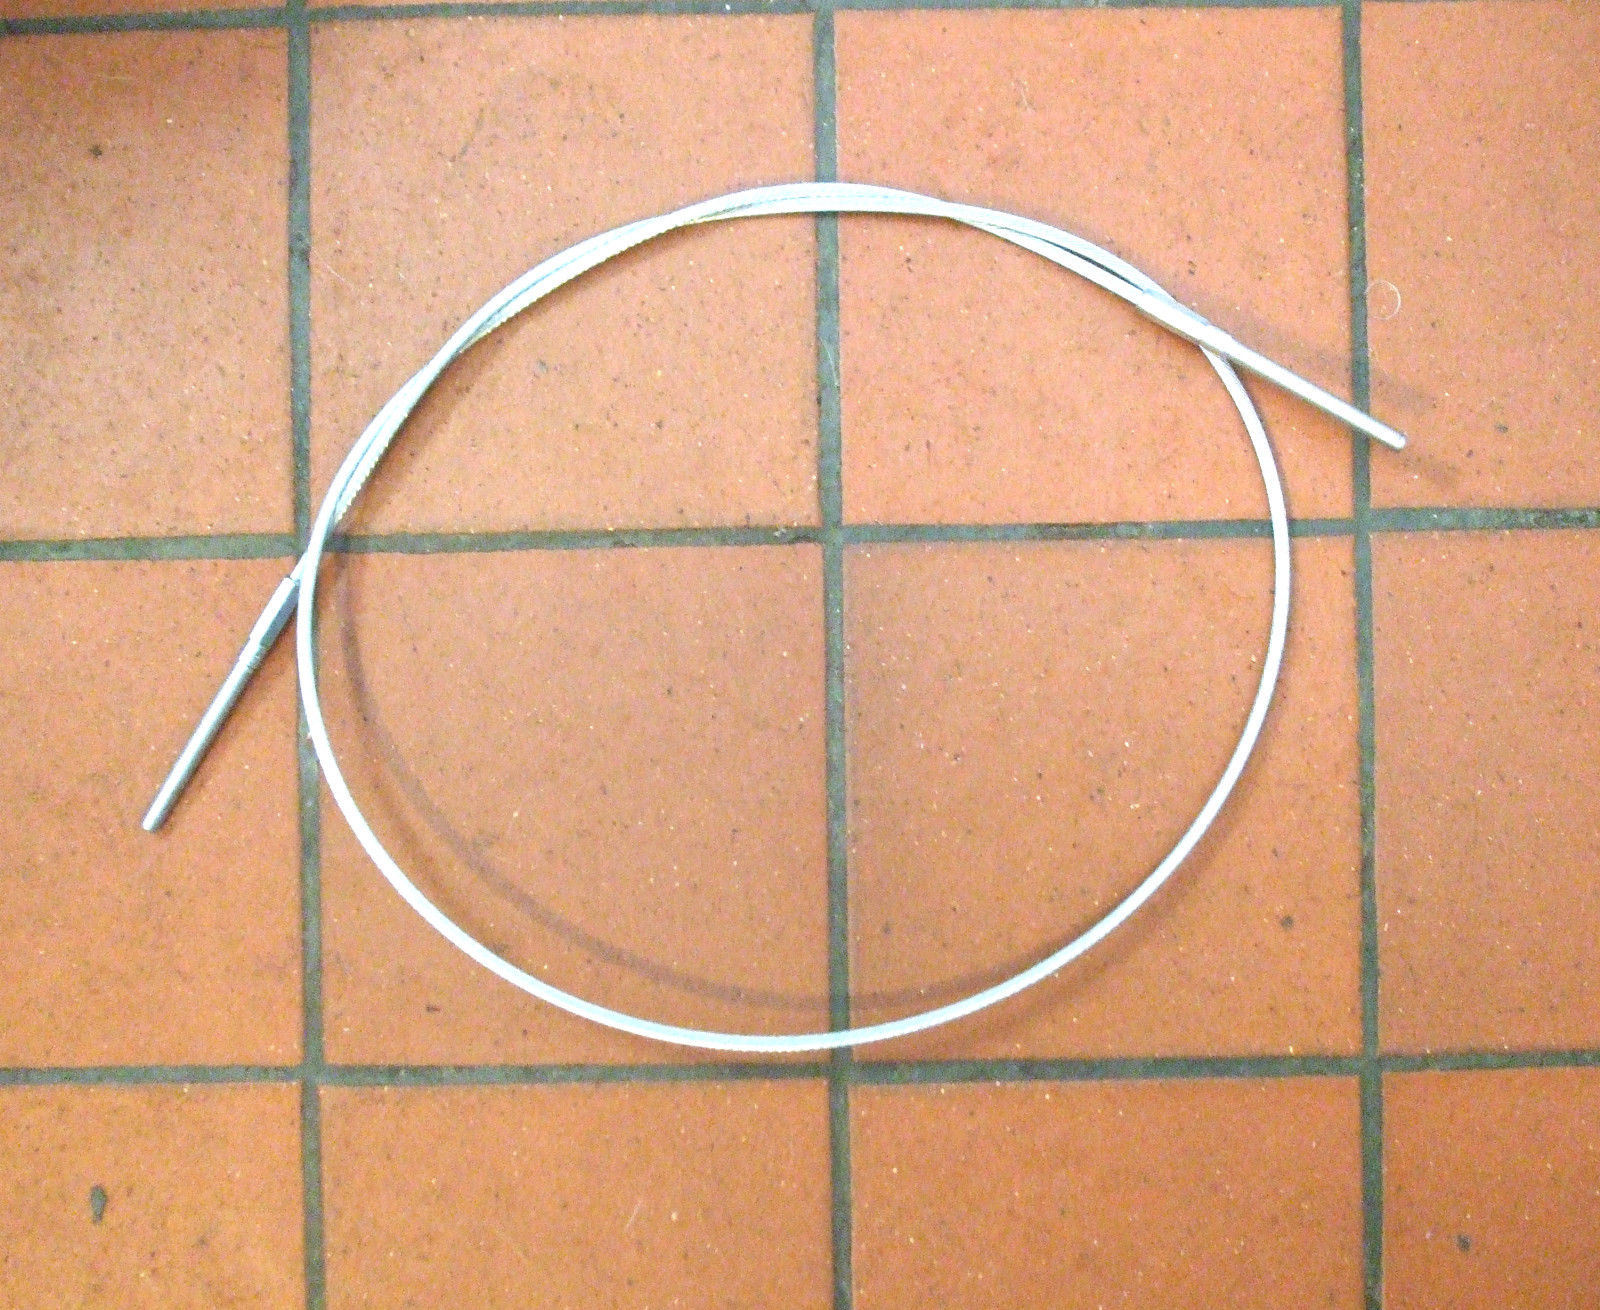 REAR HANDBRAKE CABLE (Triumph Spitfire Mk4 & 1500) (From 1973- 80)